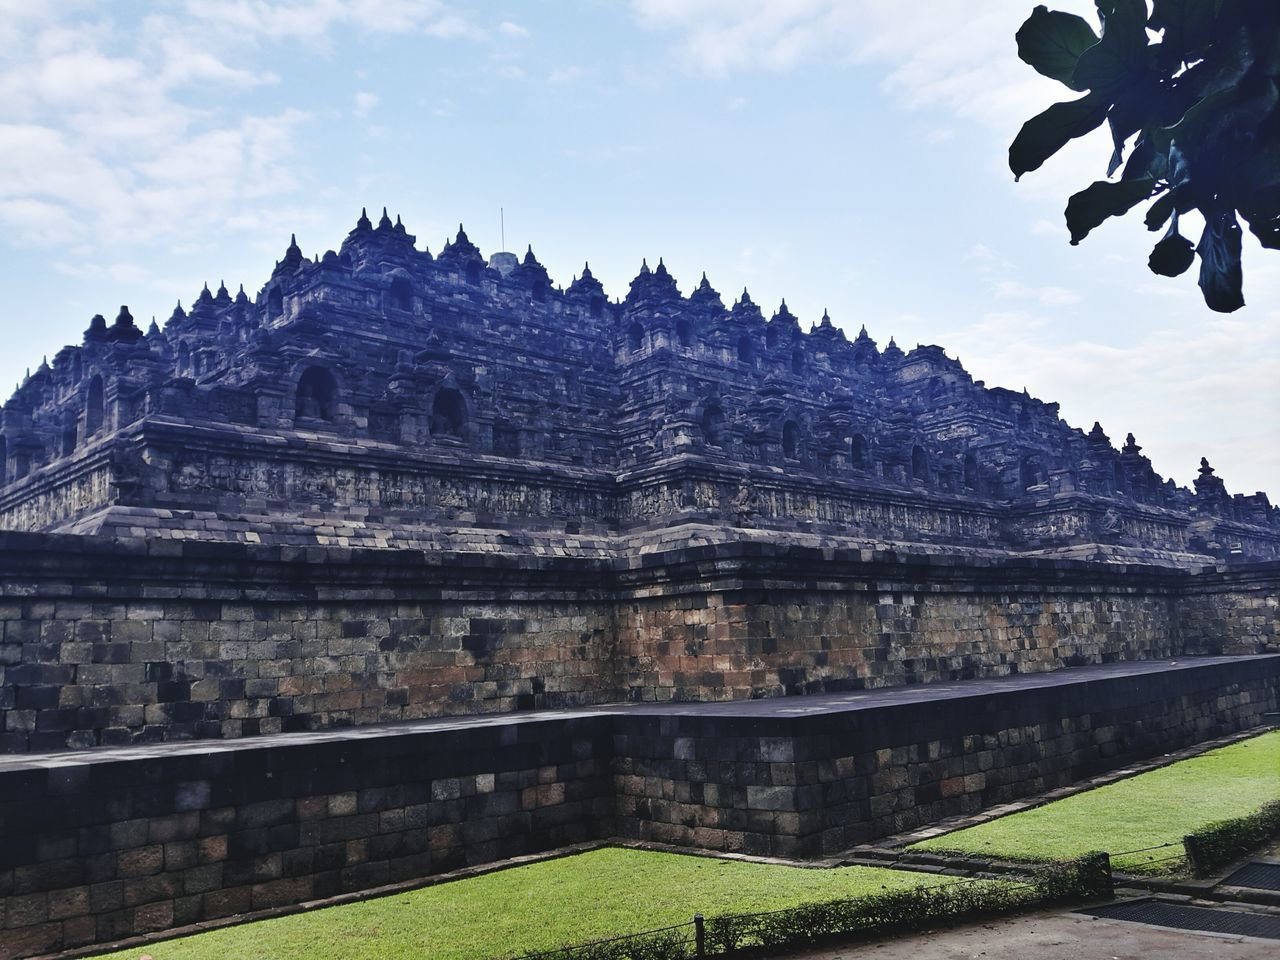 BOROBUDUR TEMPLE Travel Destinations Landscape Scenics History Architecture Historical